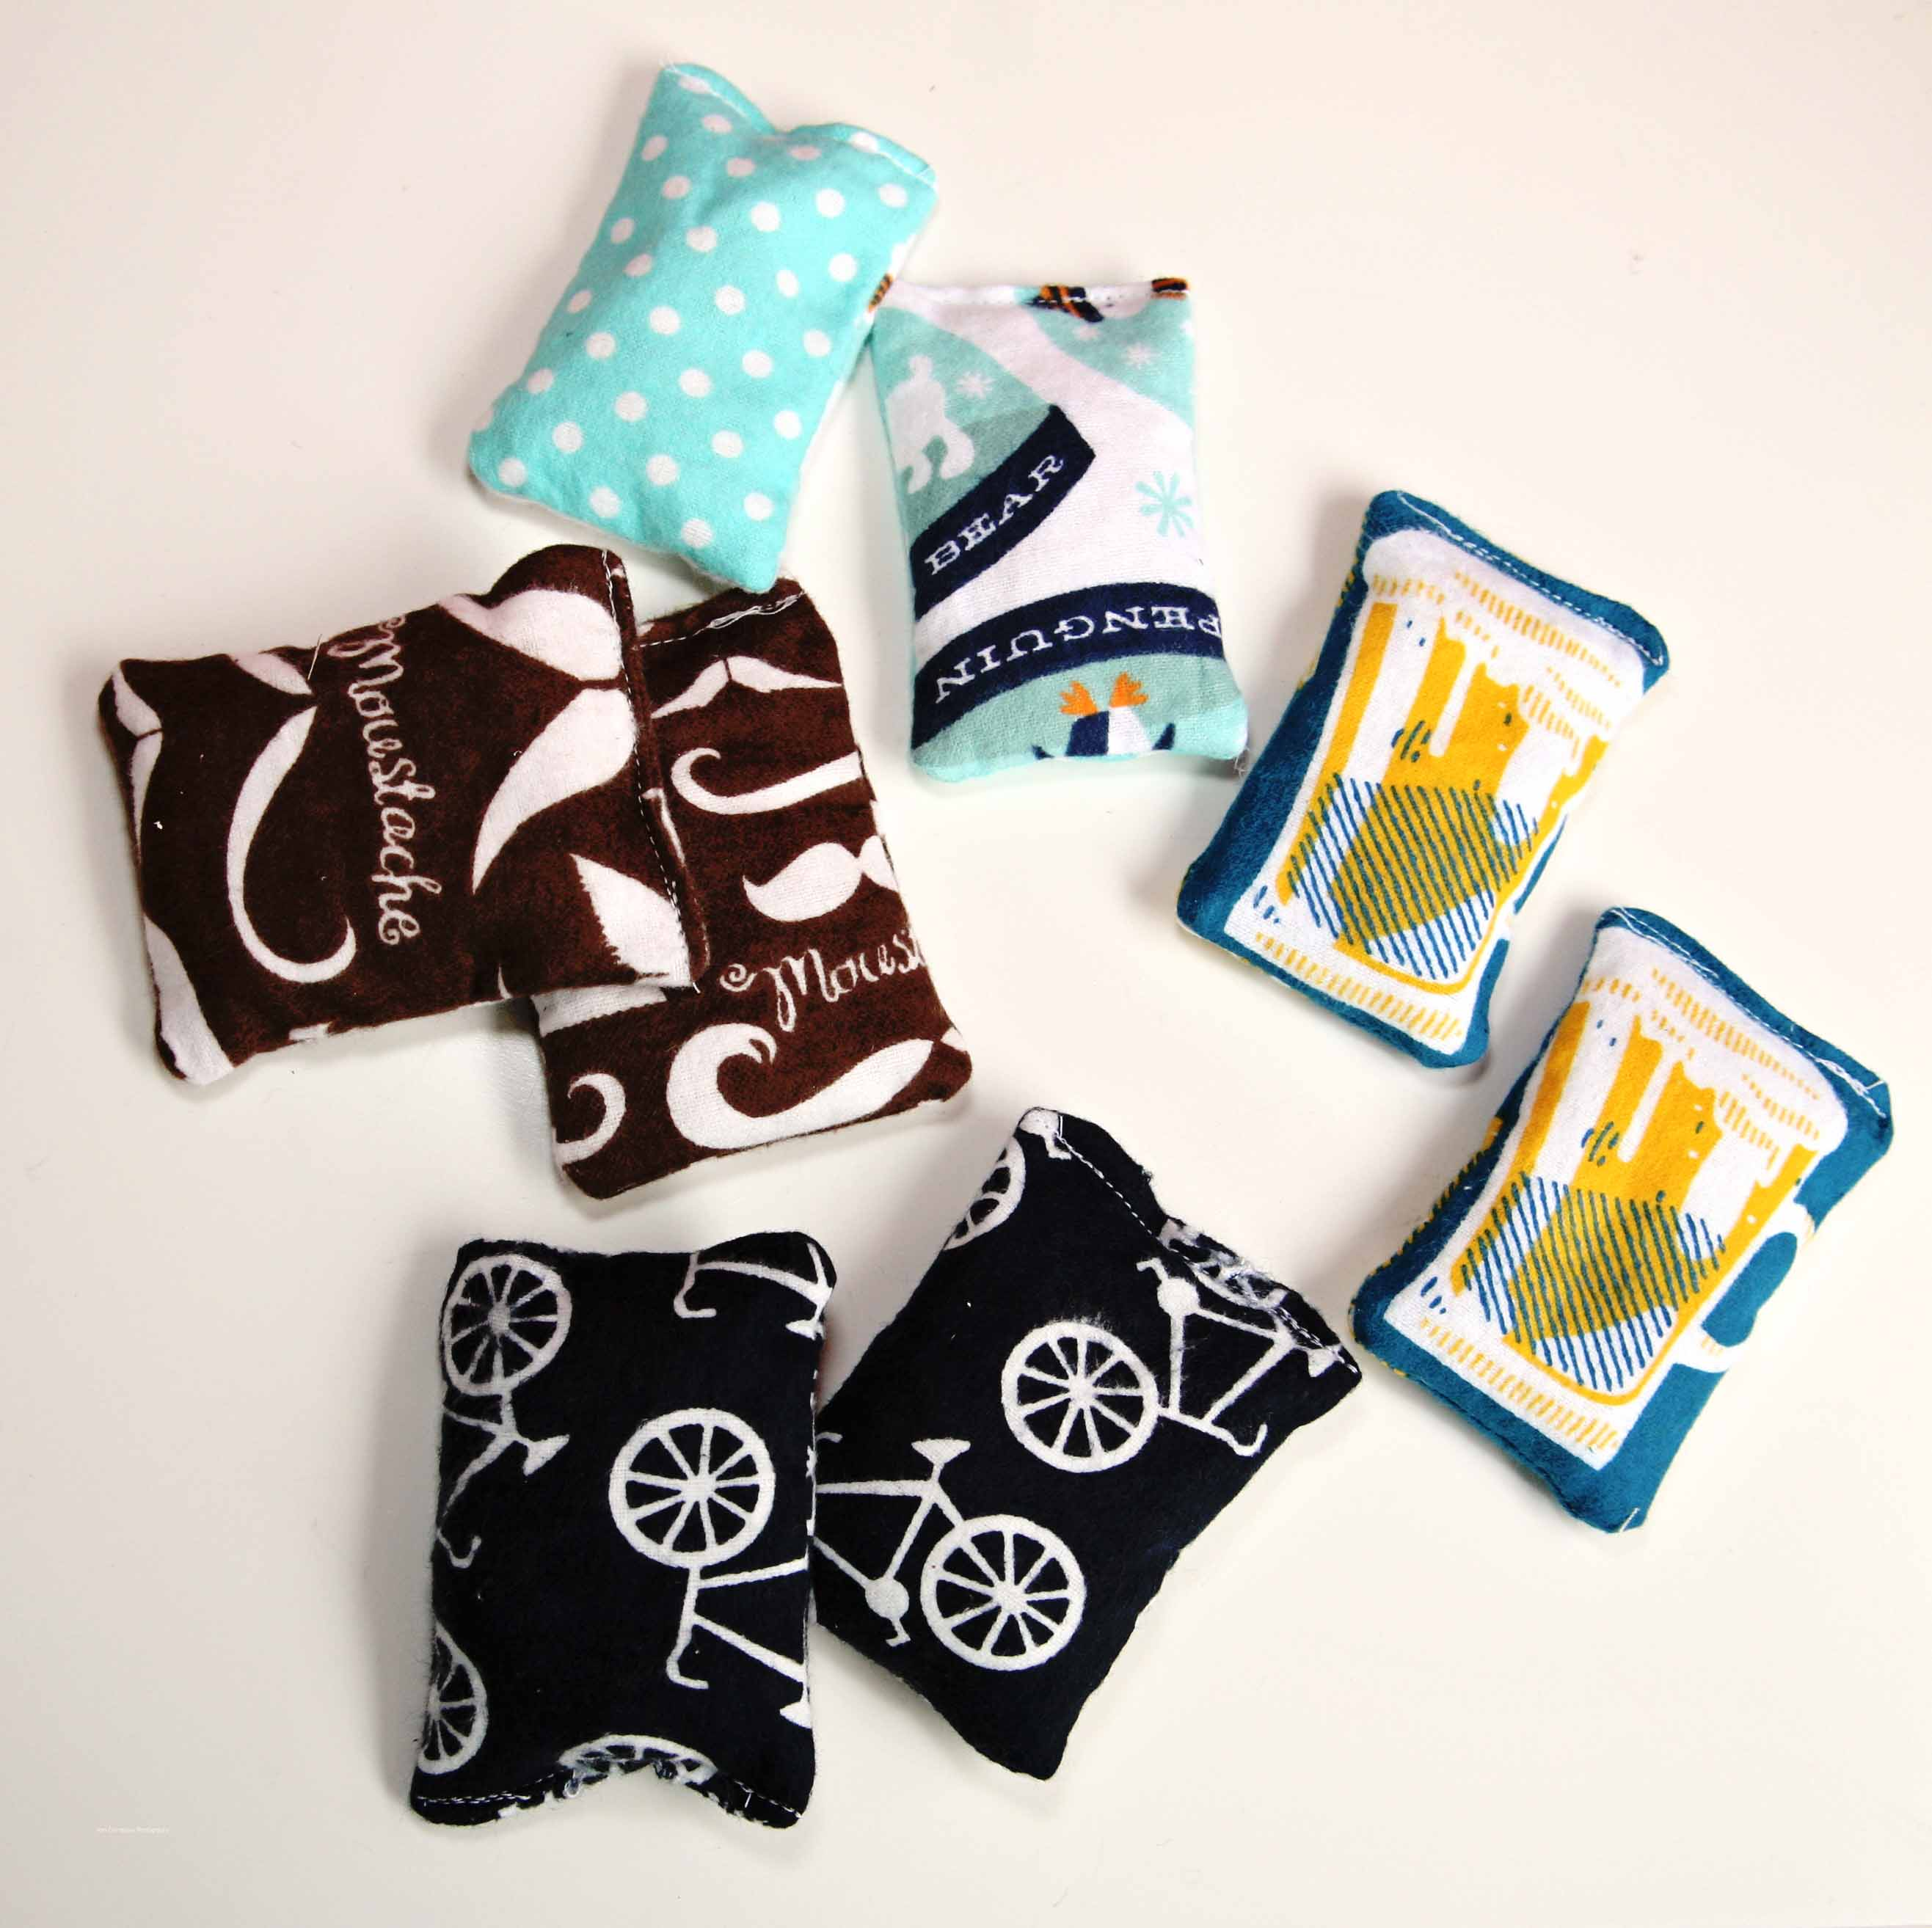 12 Days Of Handmade Diy Flannel Heating Packs Hand Warmers My